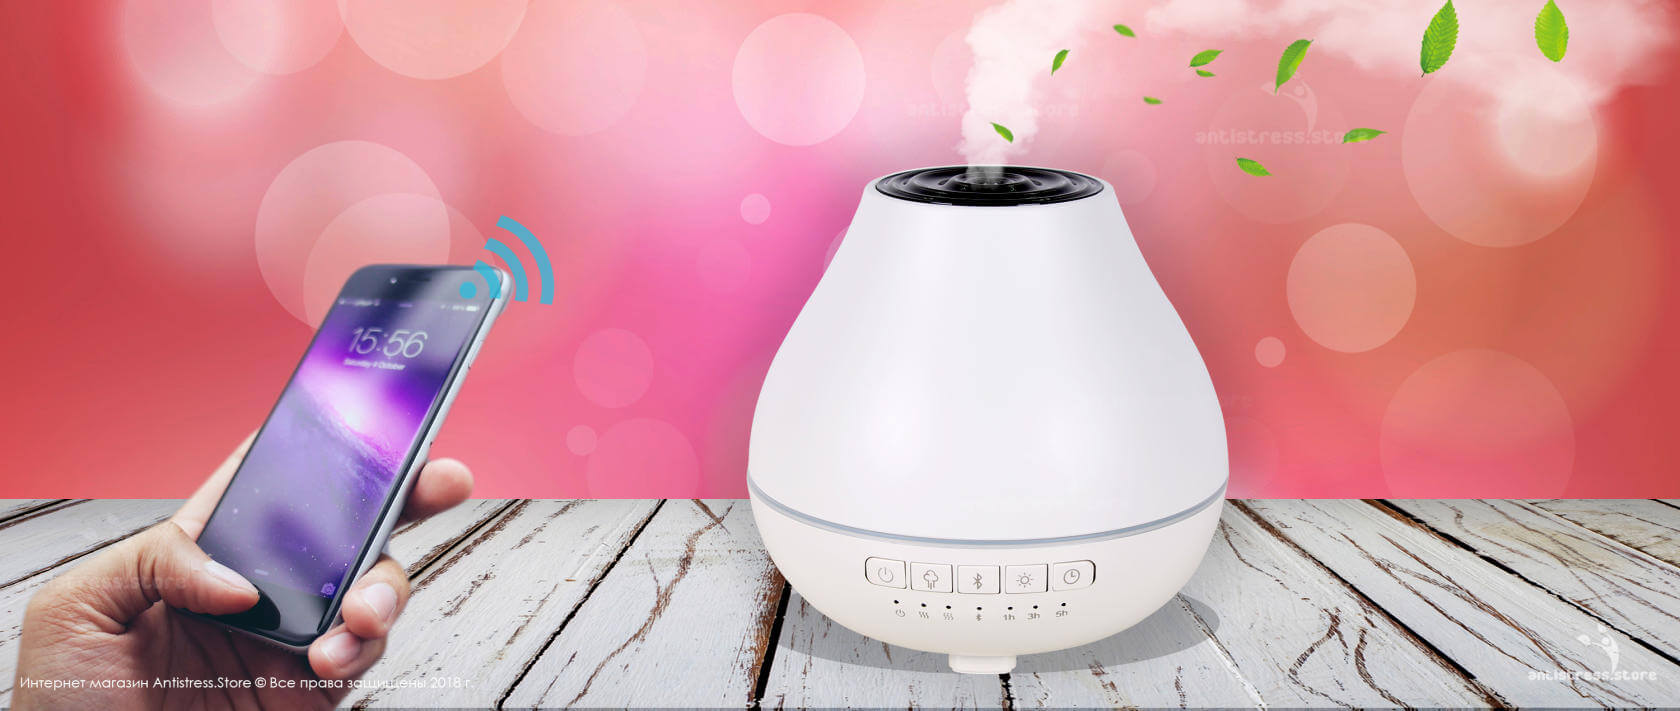 Ароматизатор воздуха Inbreathe Muse (Viomi Cloud Aromatherapy Machine)